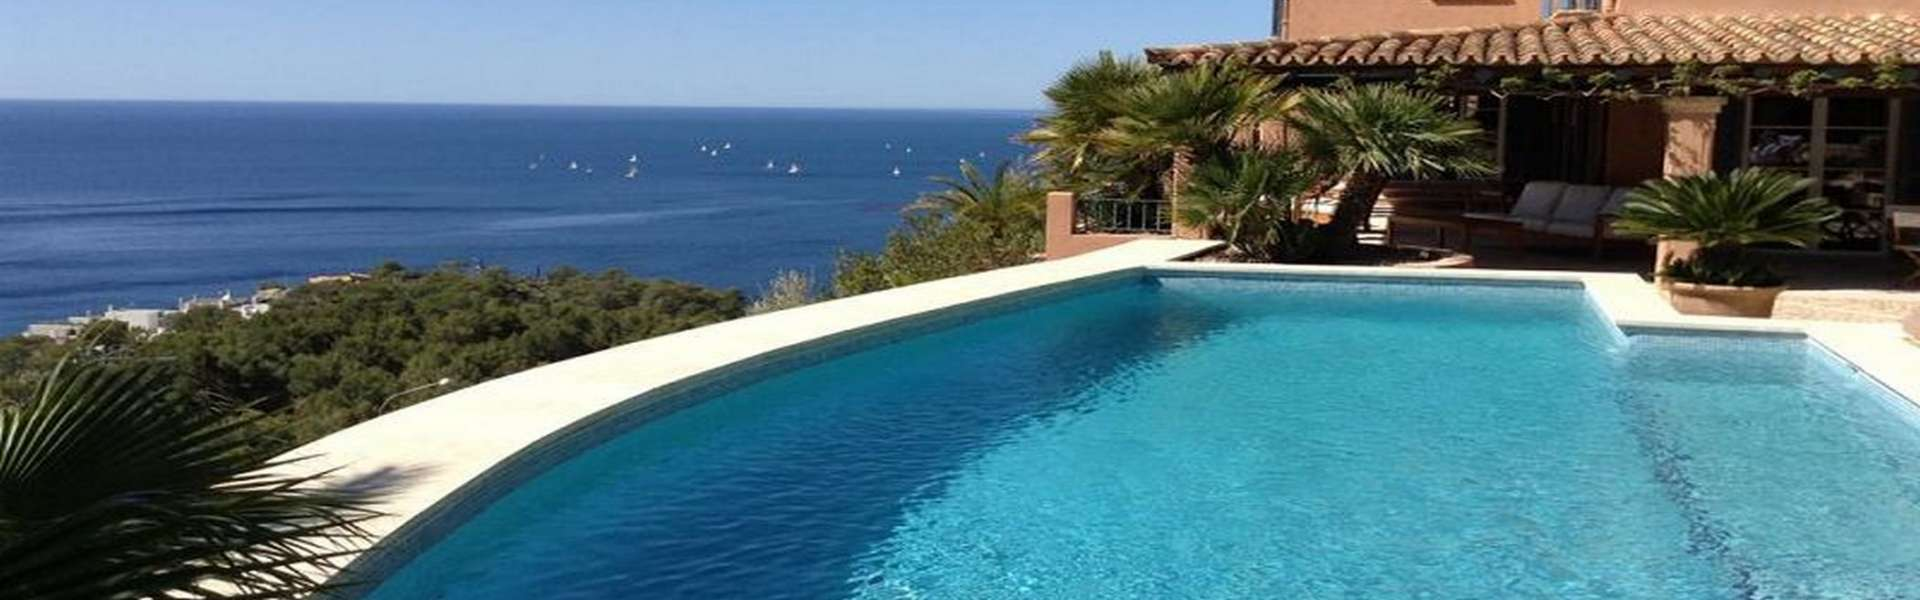 Villa with sea views in Port Andratx for sale